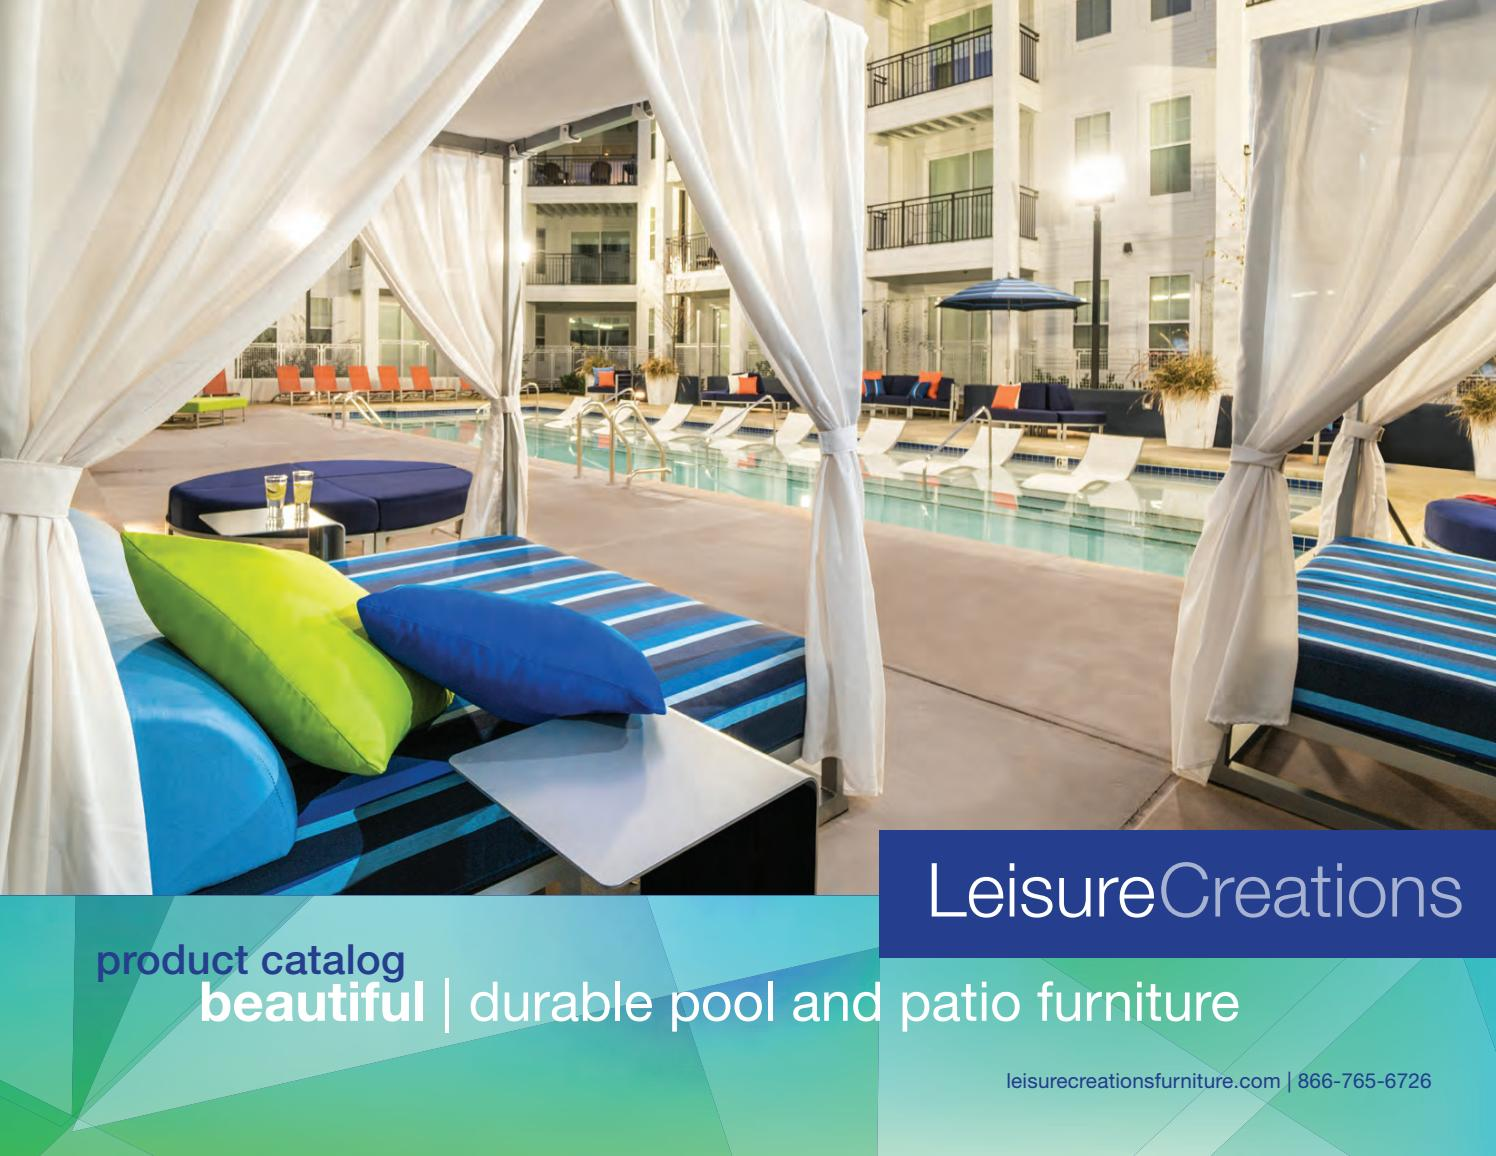 2018 Leisure Creations Furniture Catalog By Leisure Creations Issuu